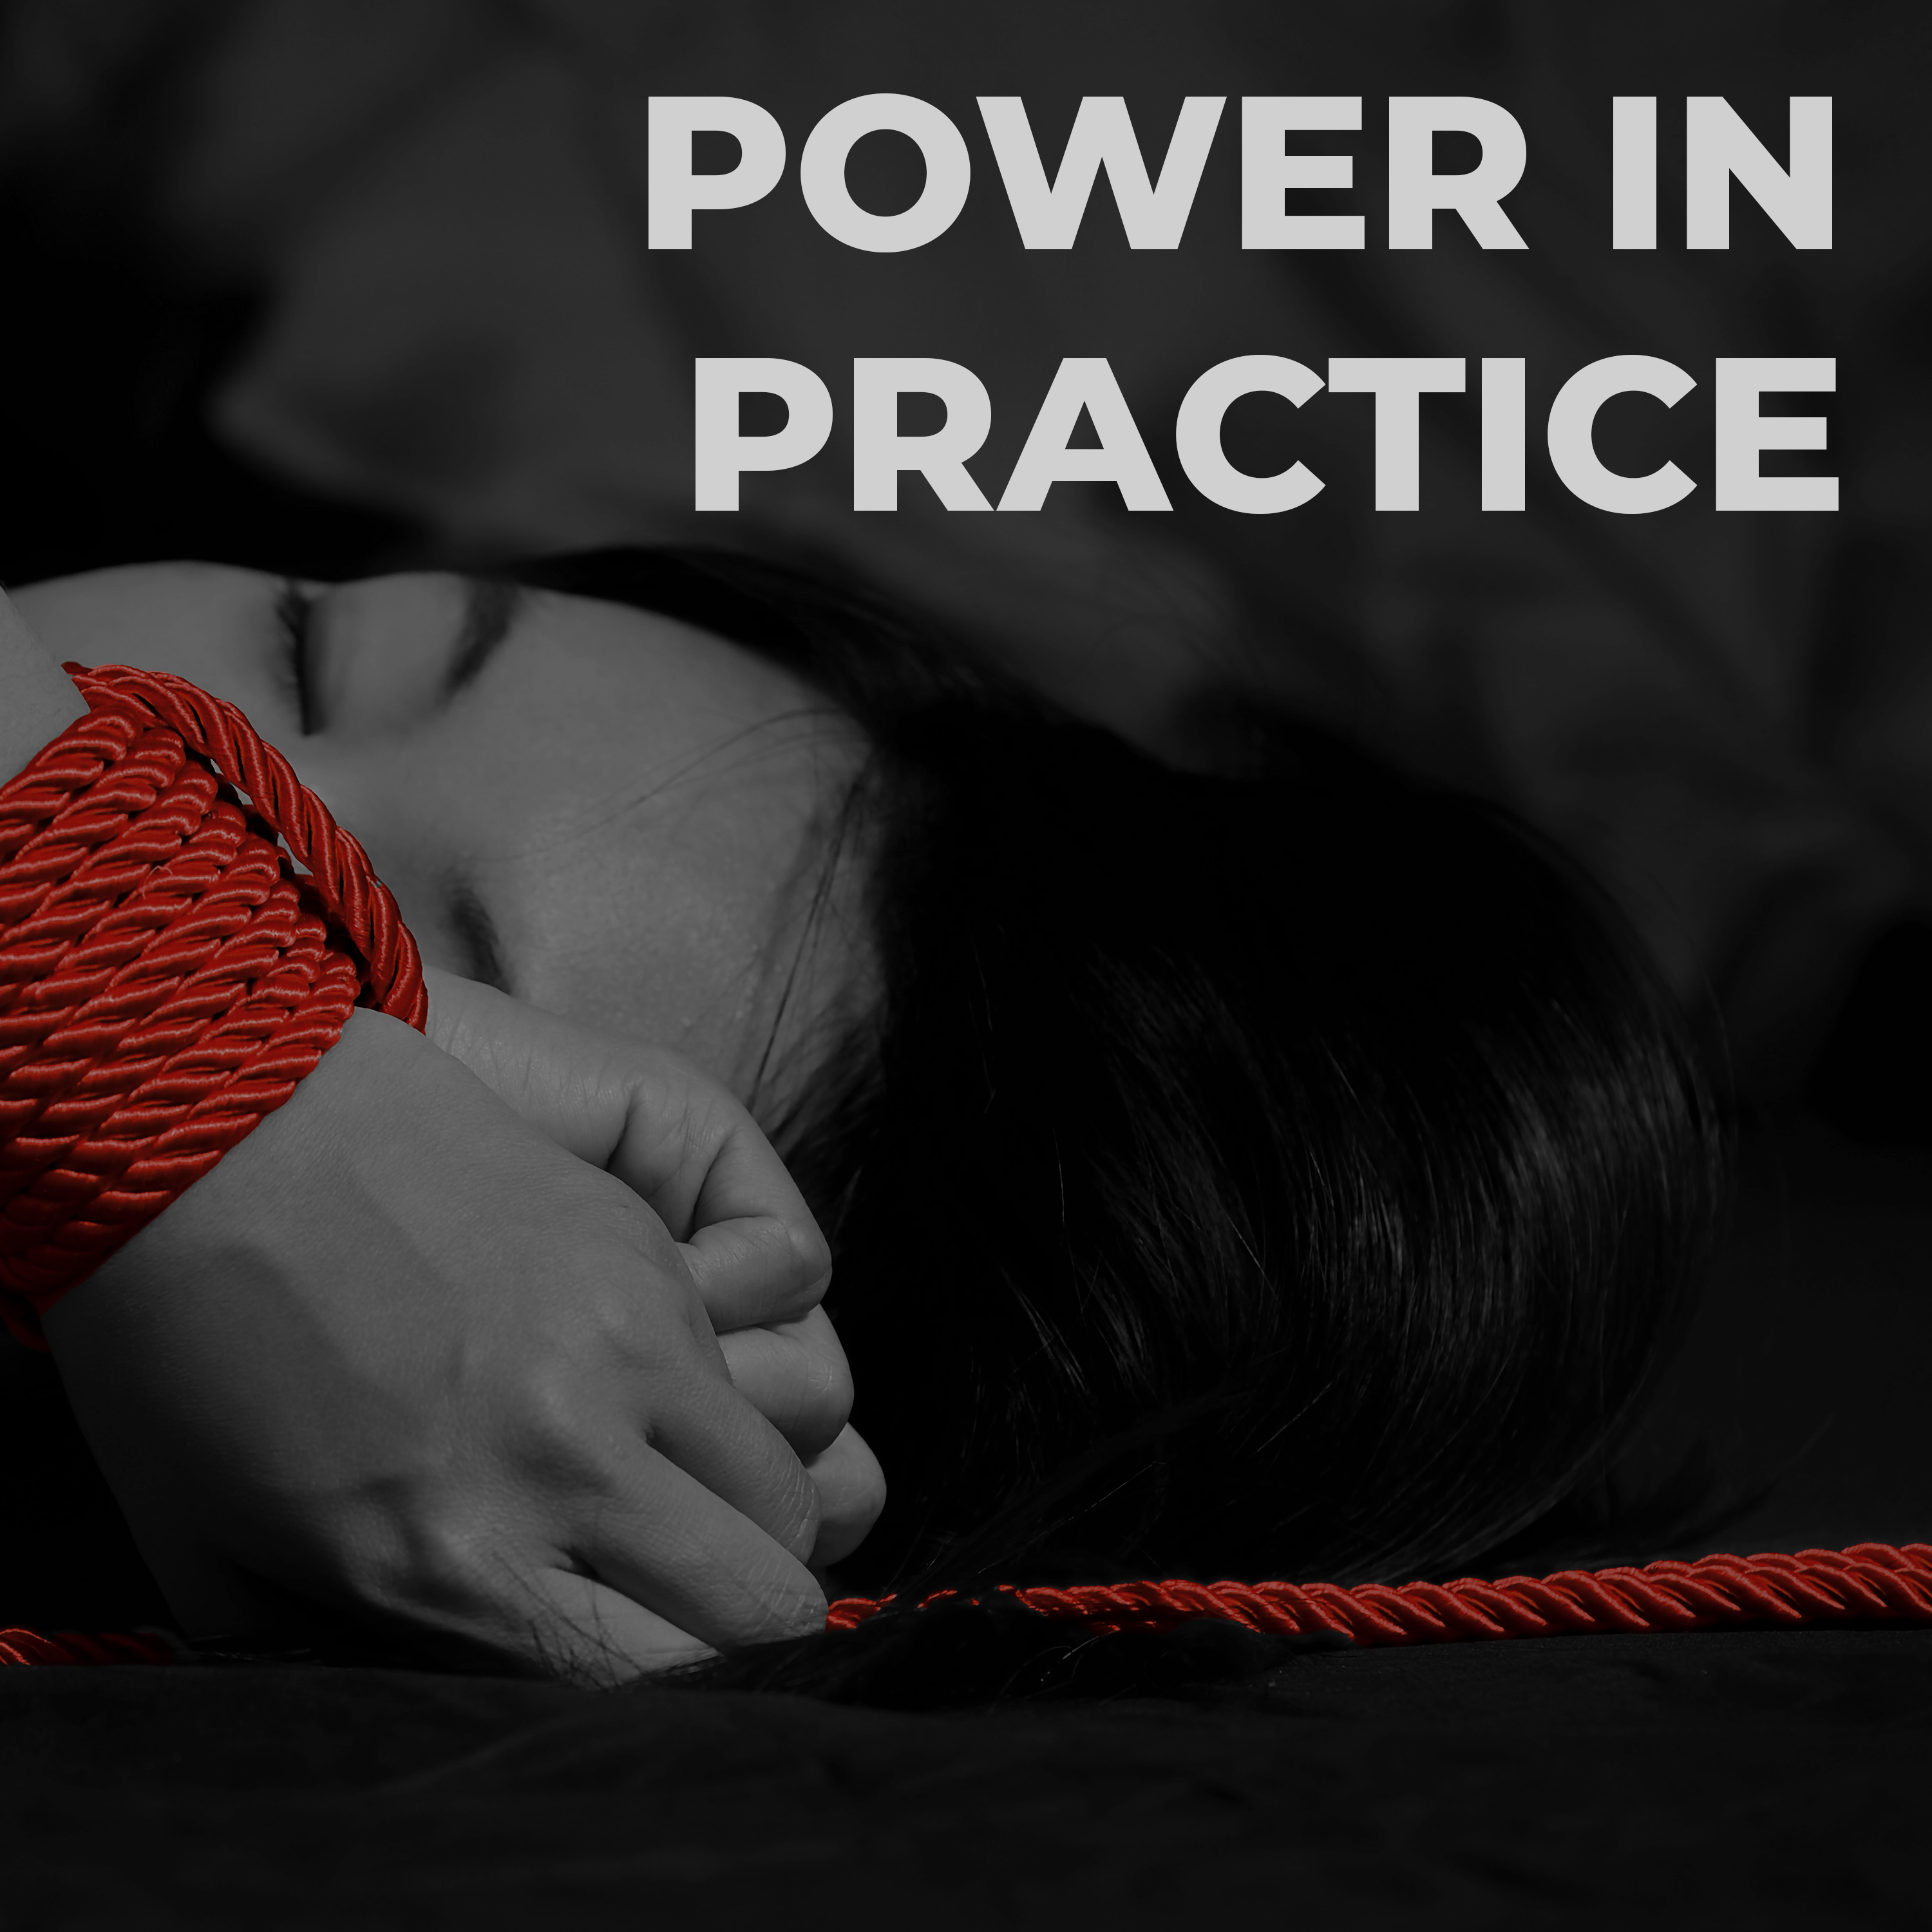 Artwork for podcast Power In Practice